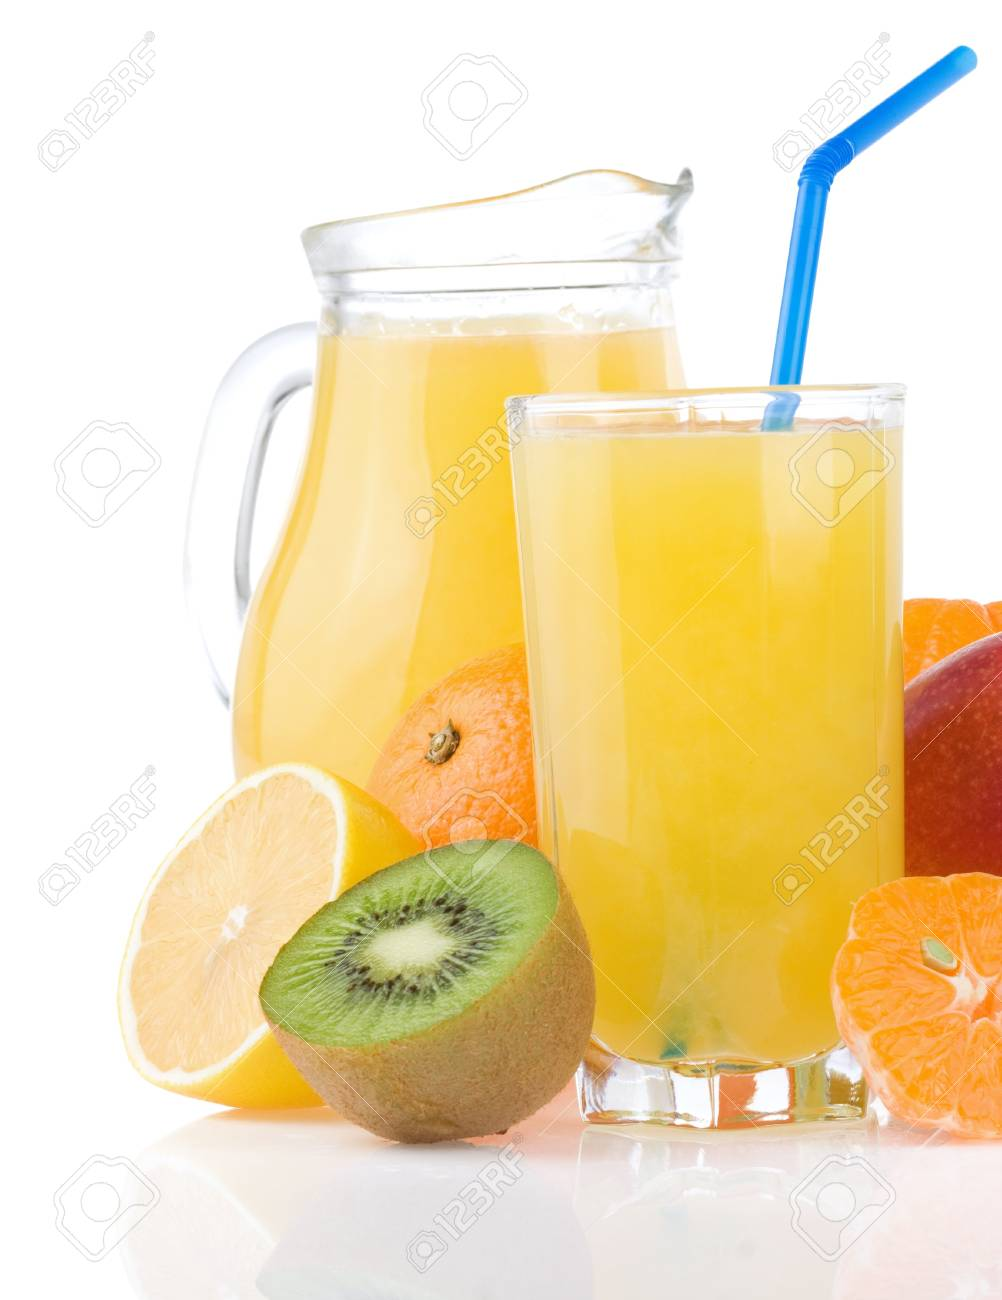 fresh tropical fruits and juice in glass isolated on white background Stock Photo - 13585829